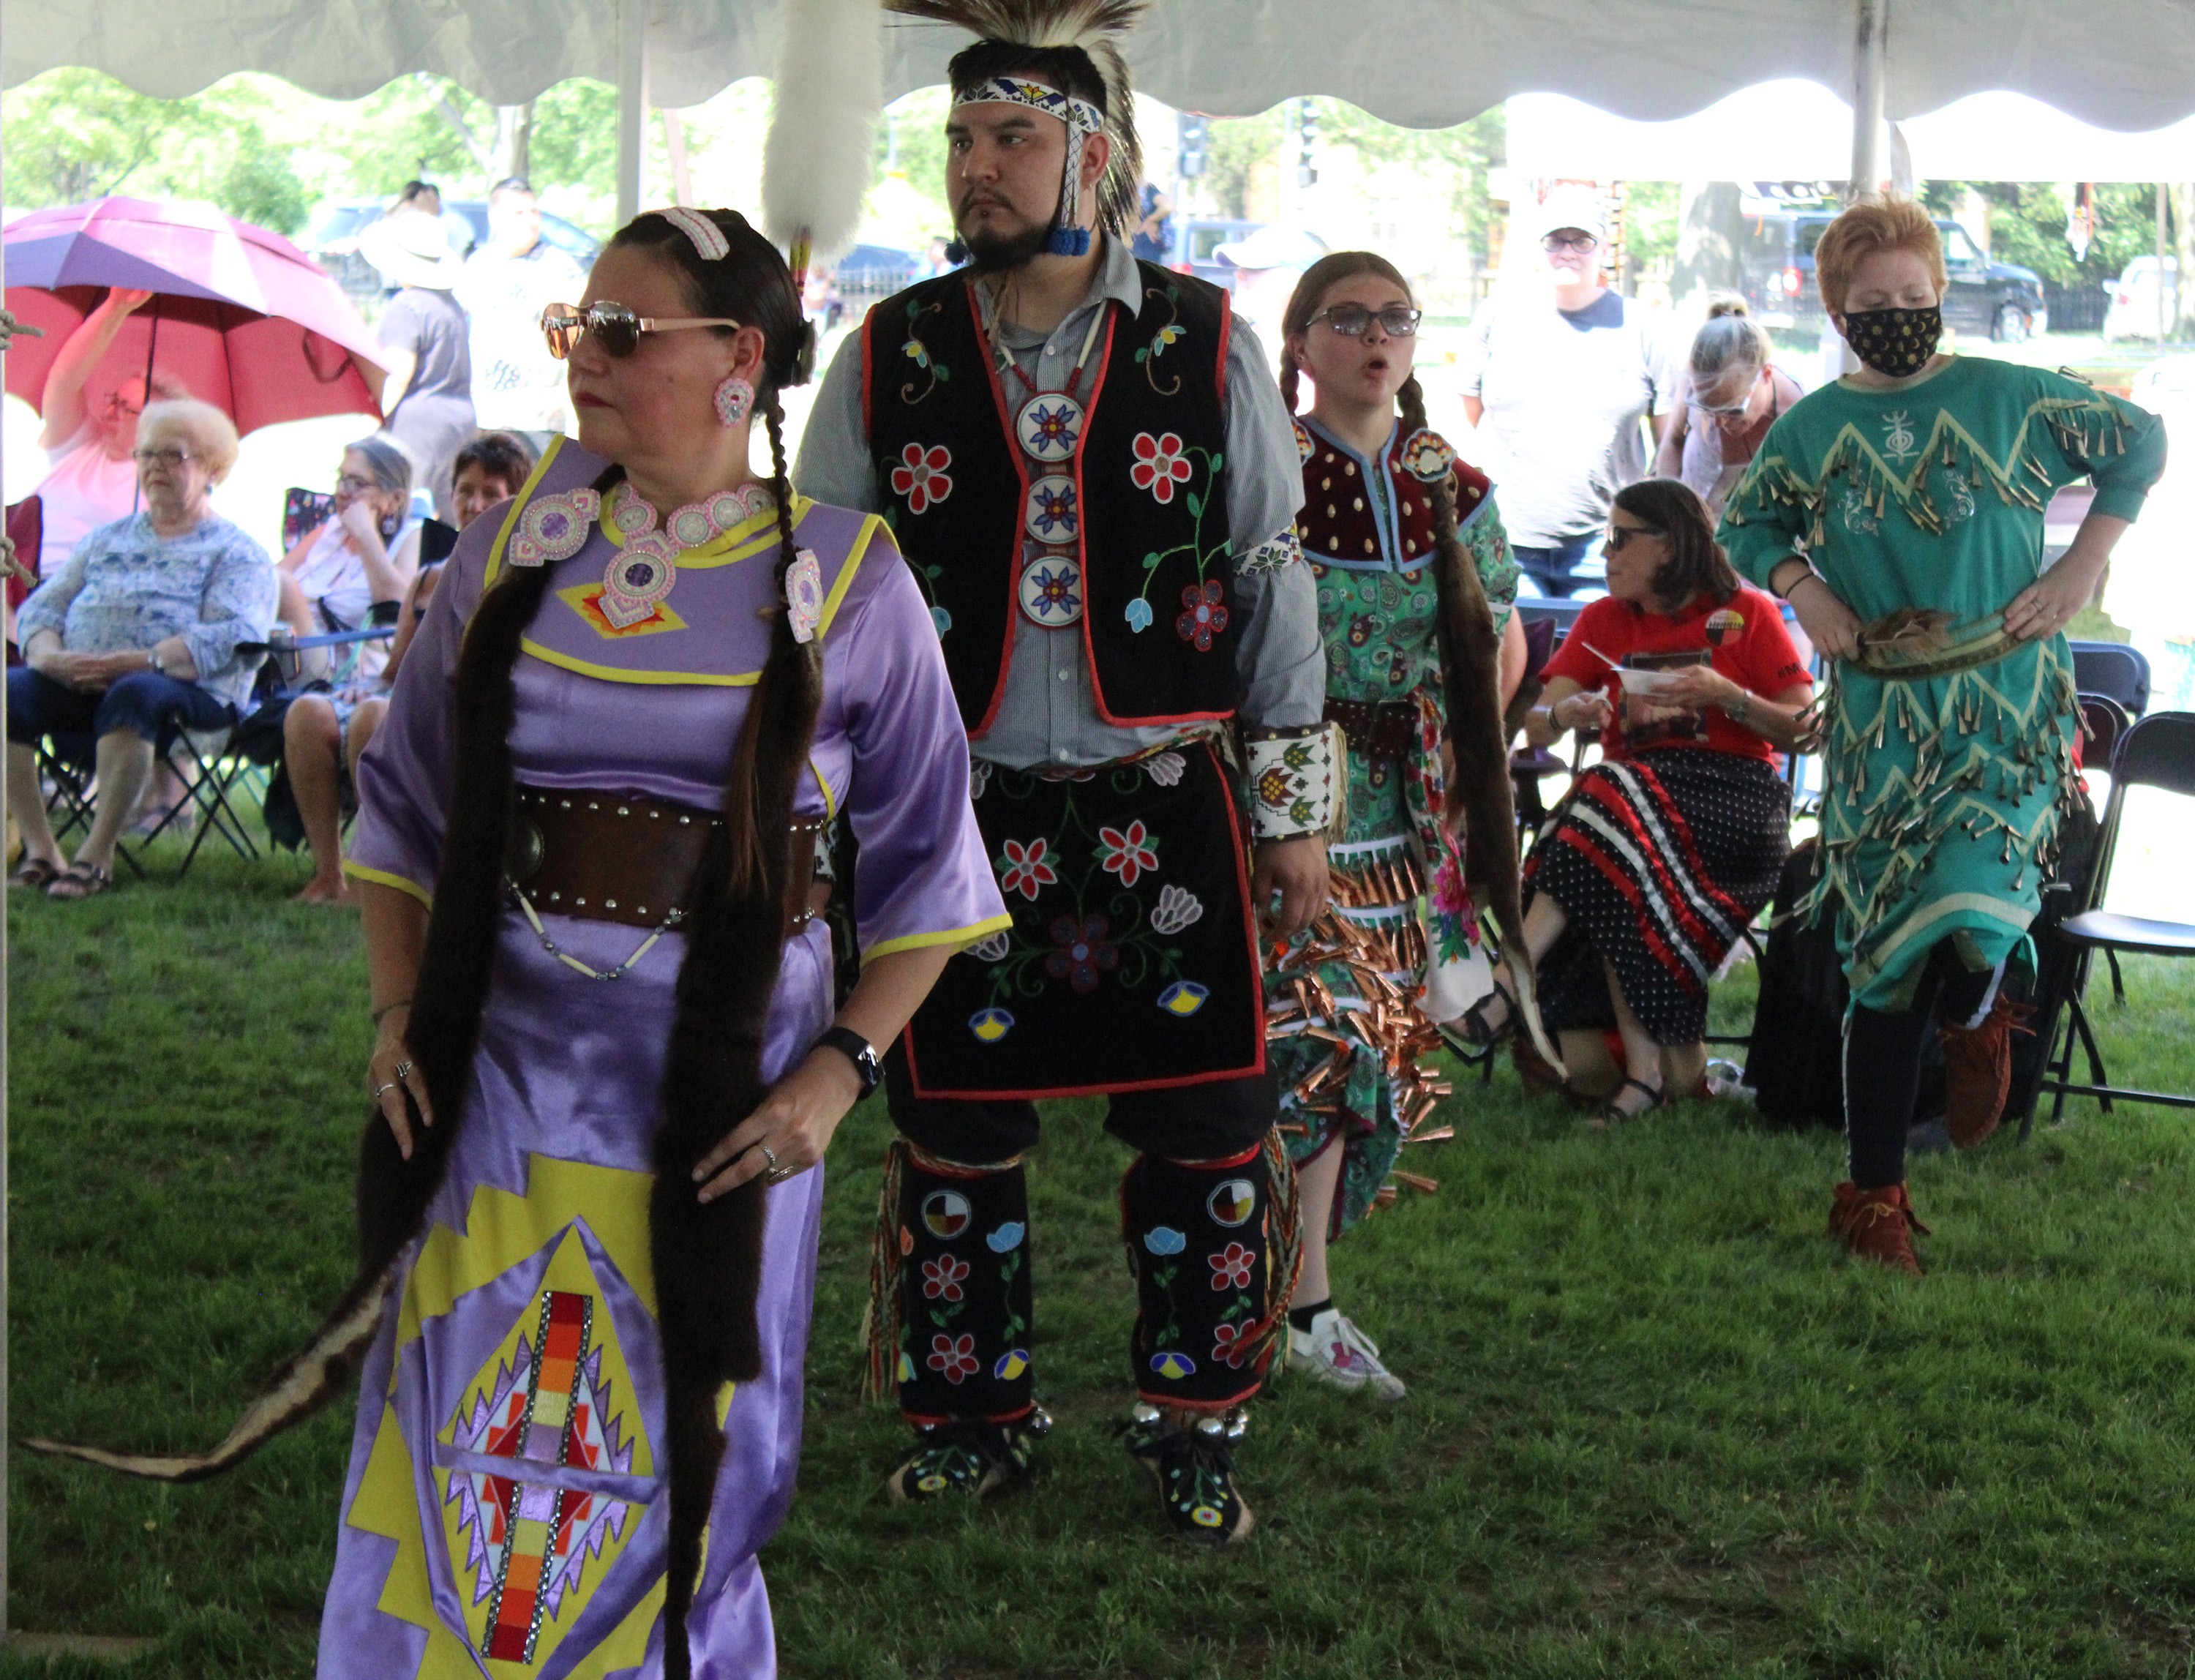 A number of powwow dancers felt cooler under the tent June 5 at Oshkosh Public Museum as they celebrate the opening of the Menominee Clans Story.(Lee Pulaski   NEW Media)